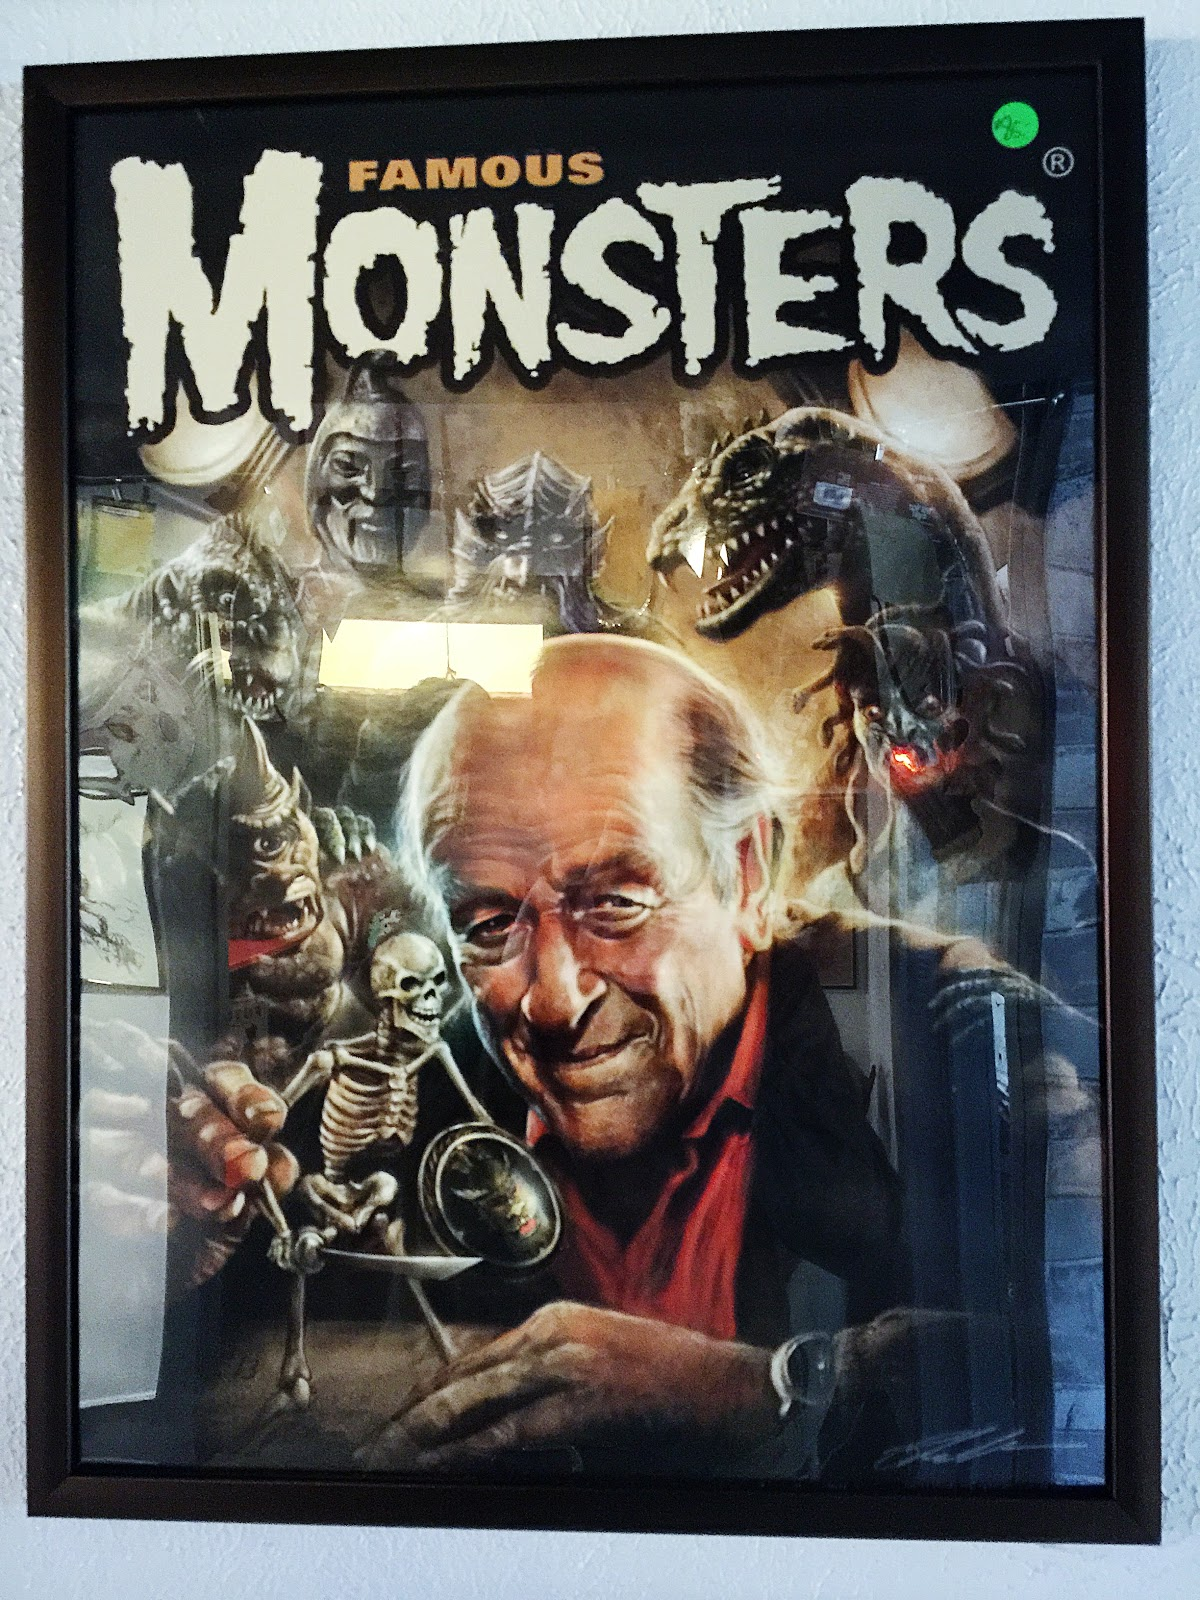 A tribute poster to Ray Harryhausen